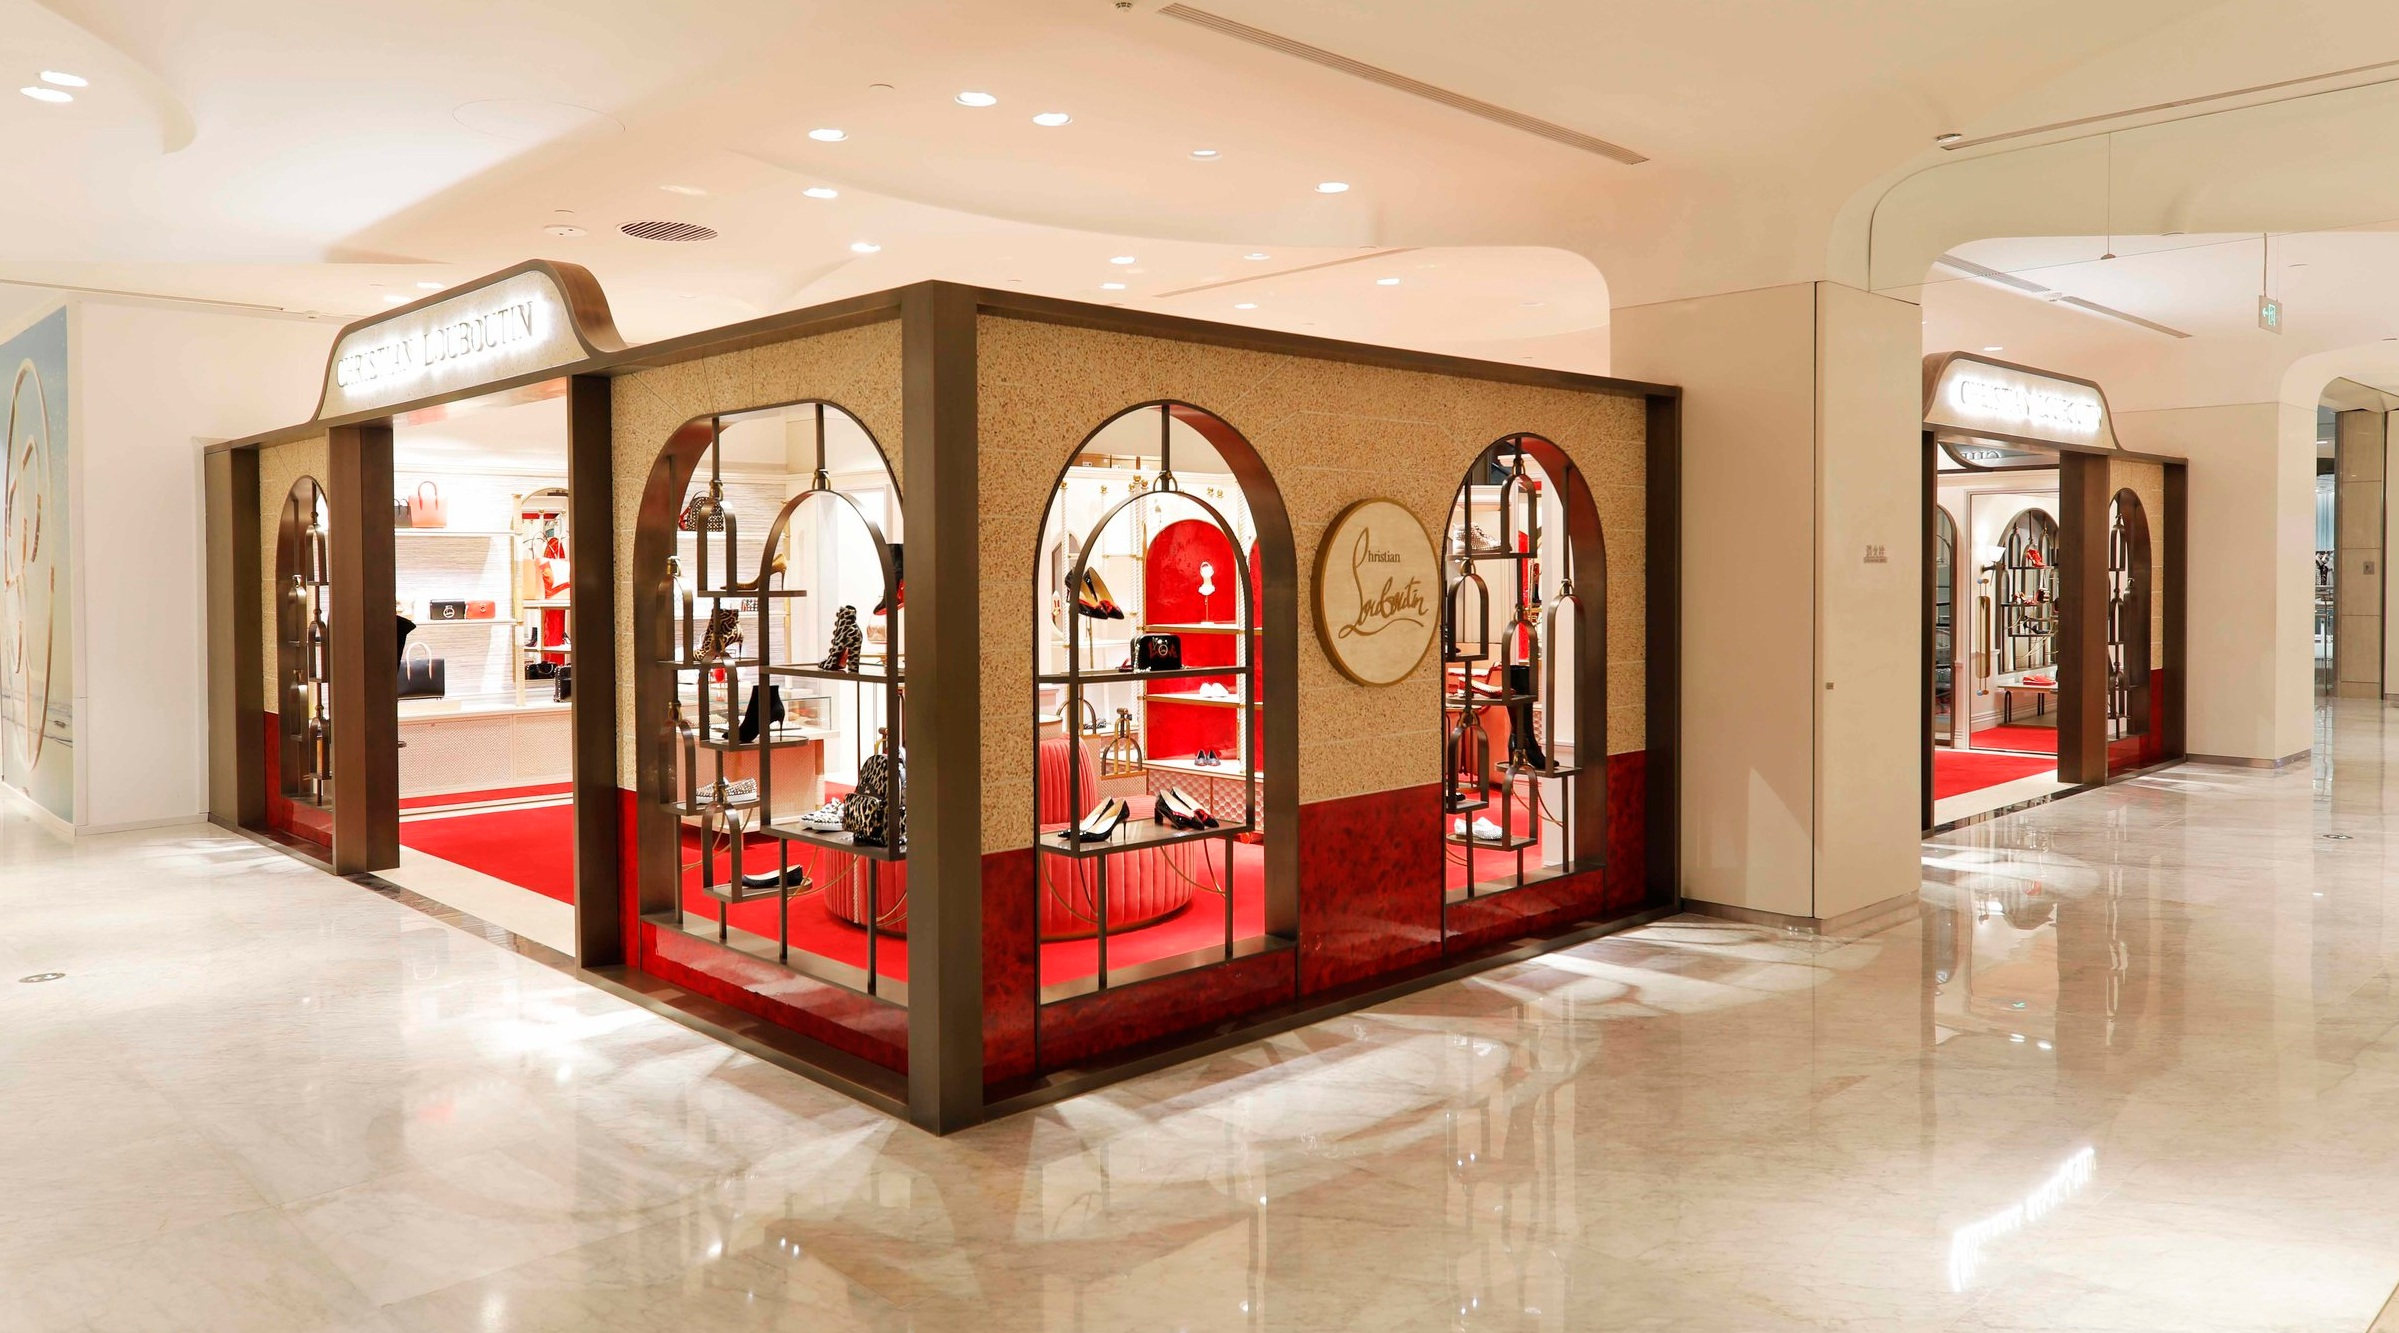 Foresso Louboutin Beijing